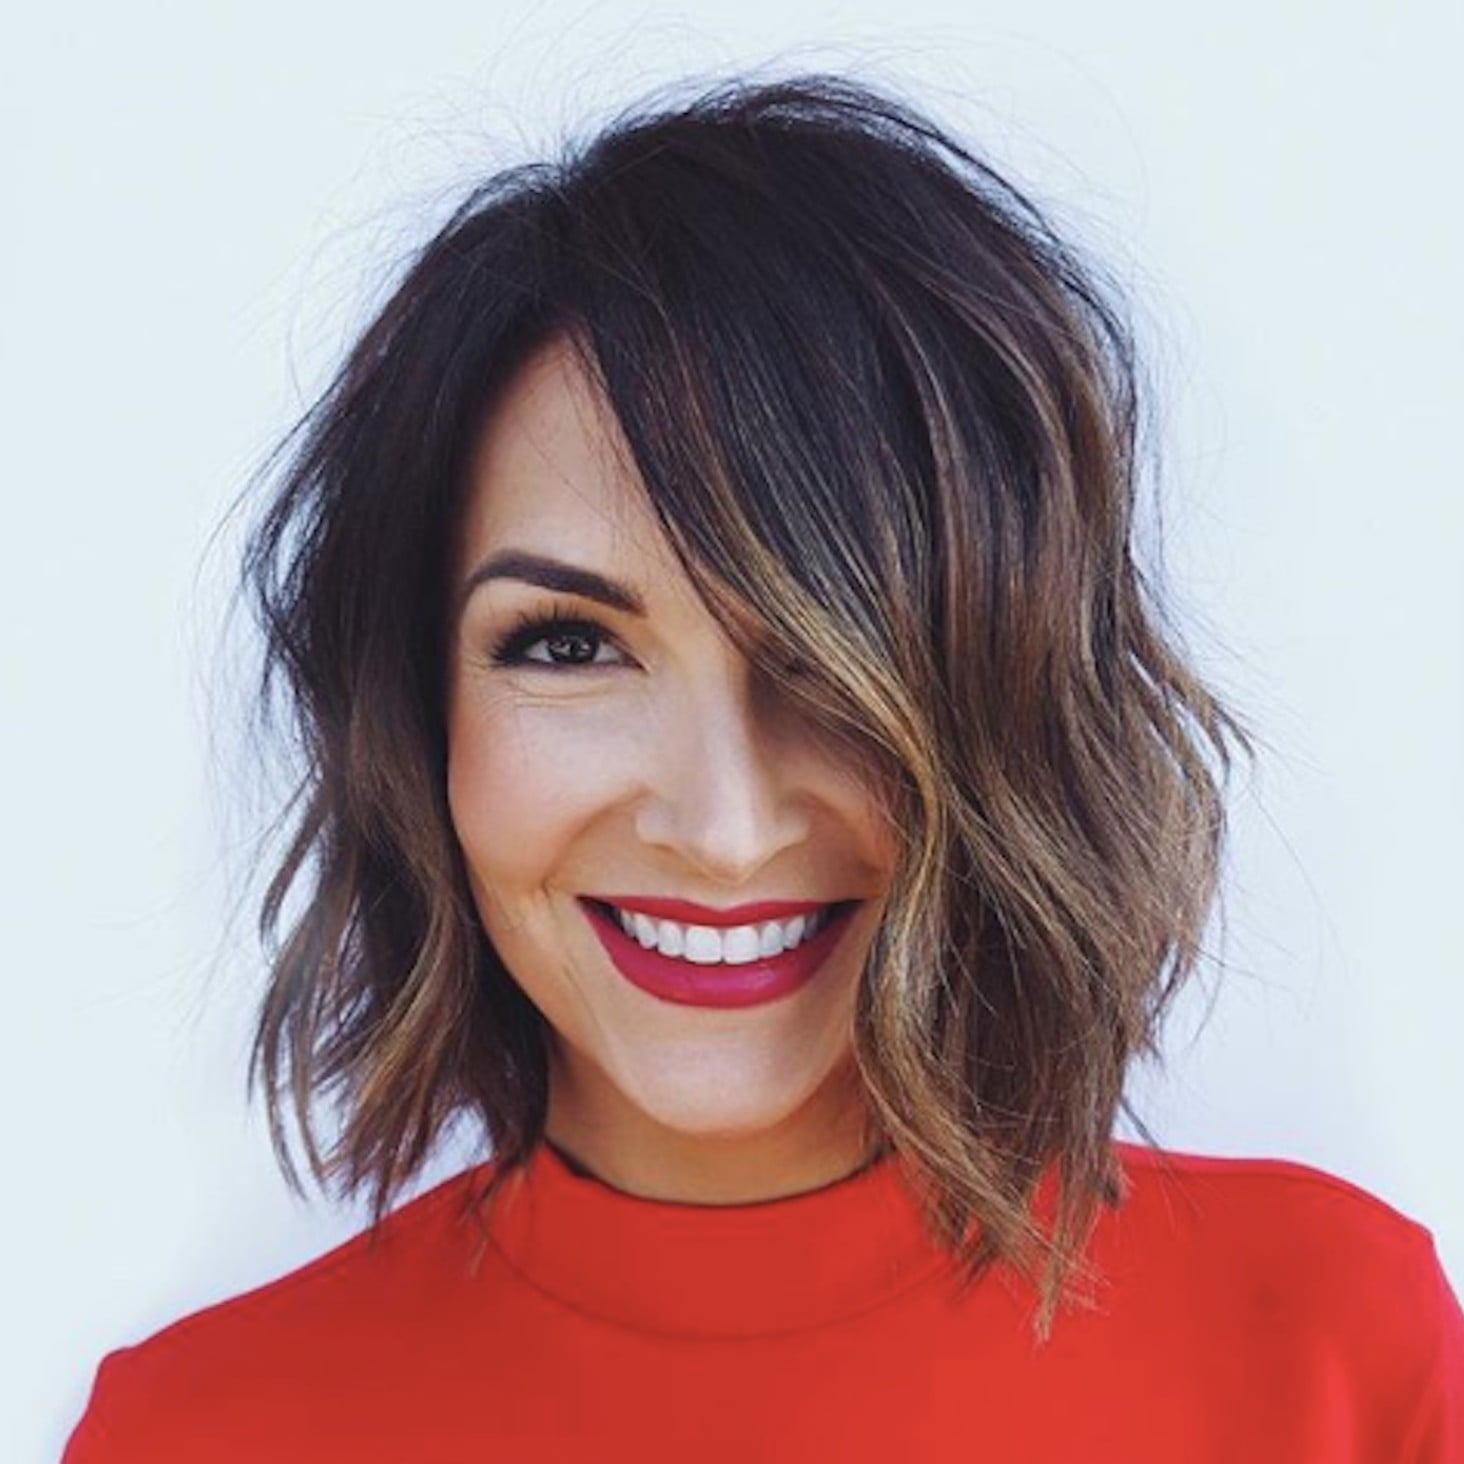 50 Best Bob Haircut Pictures 2019